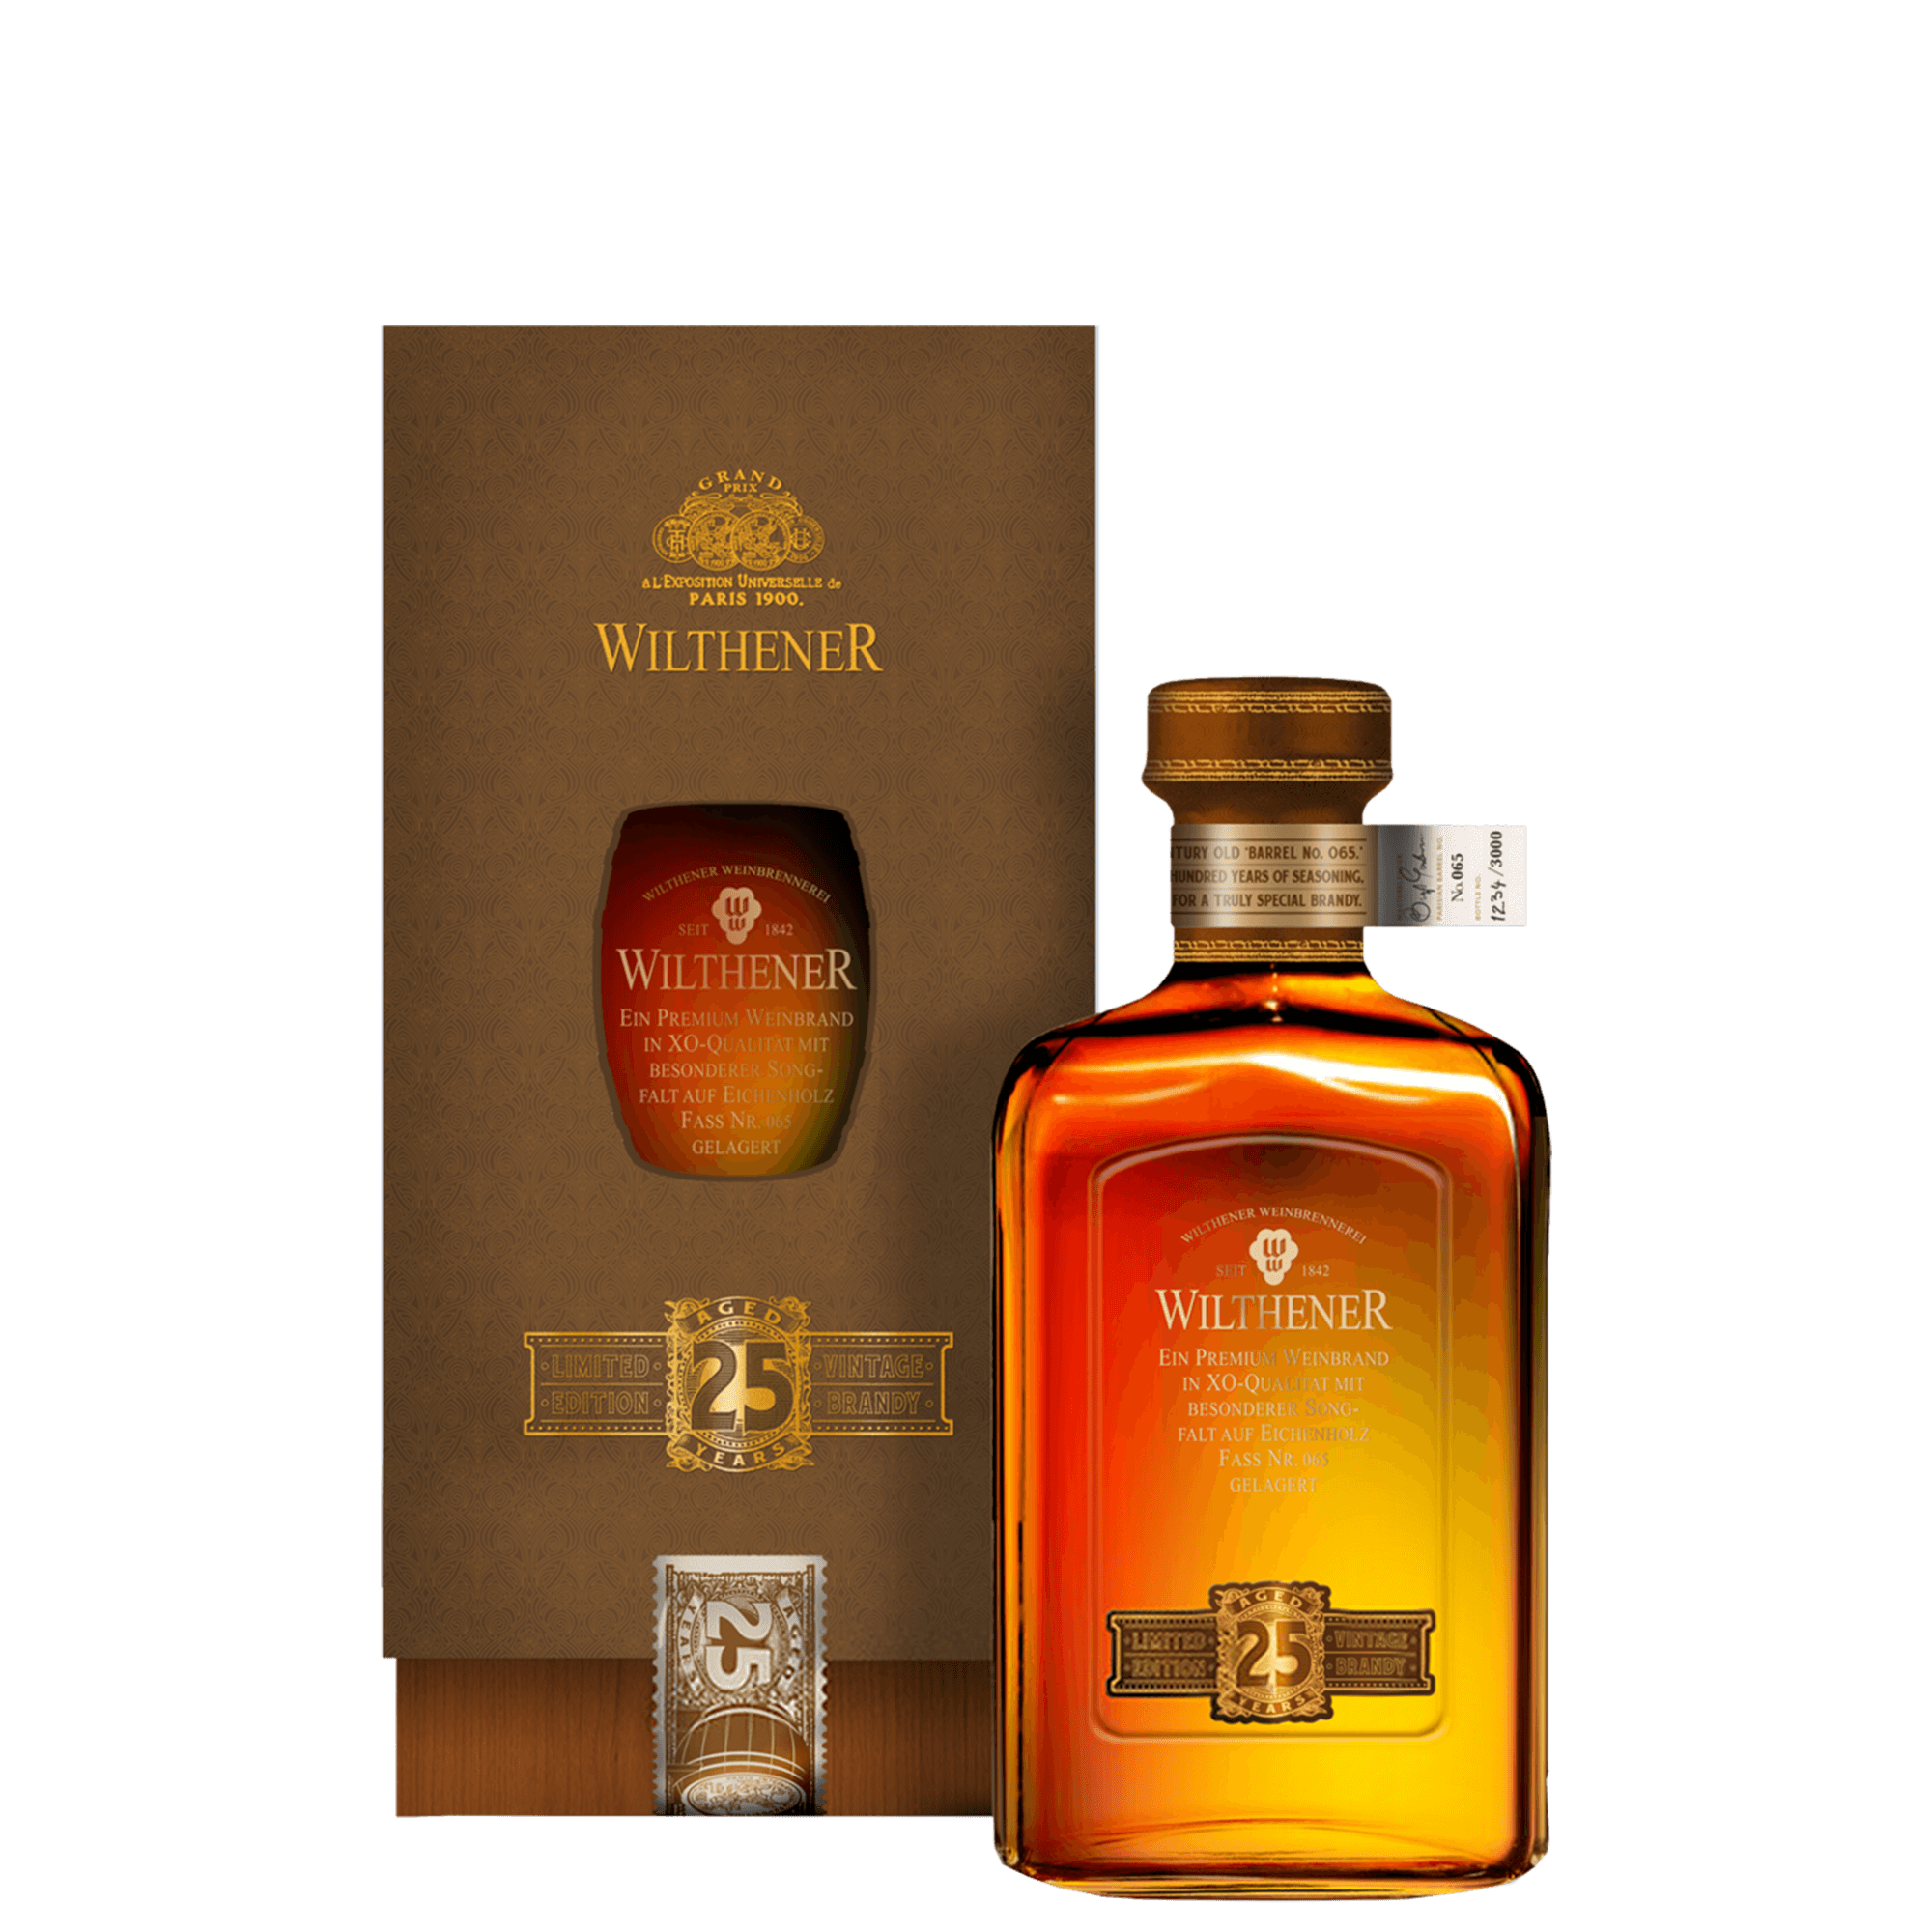 Wilthener Jubiläumsedition 0,5l